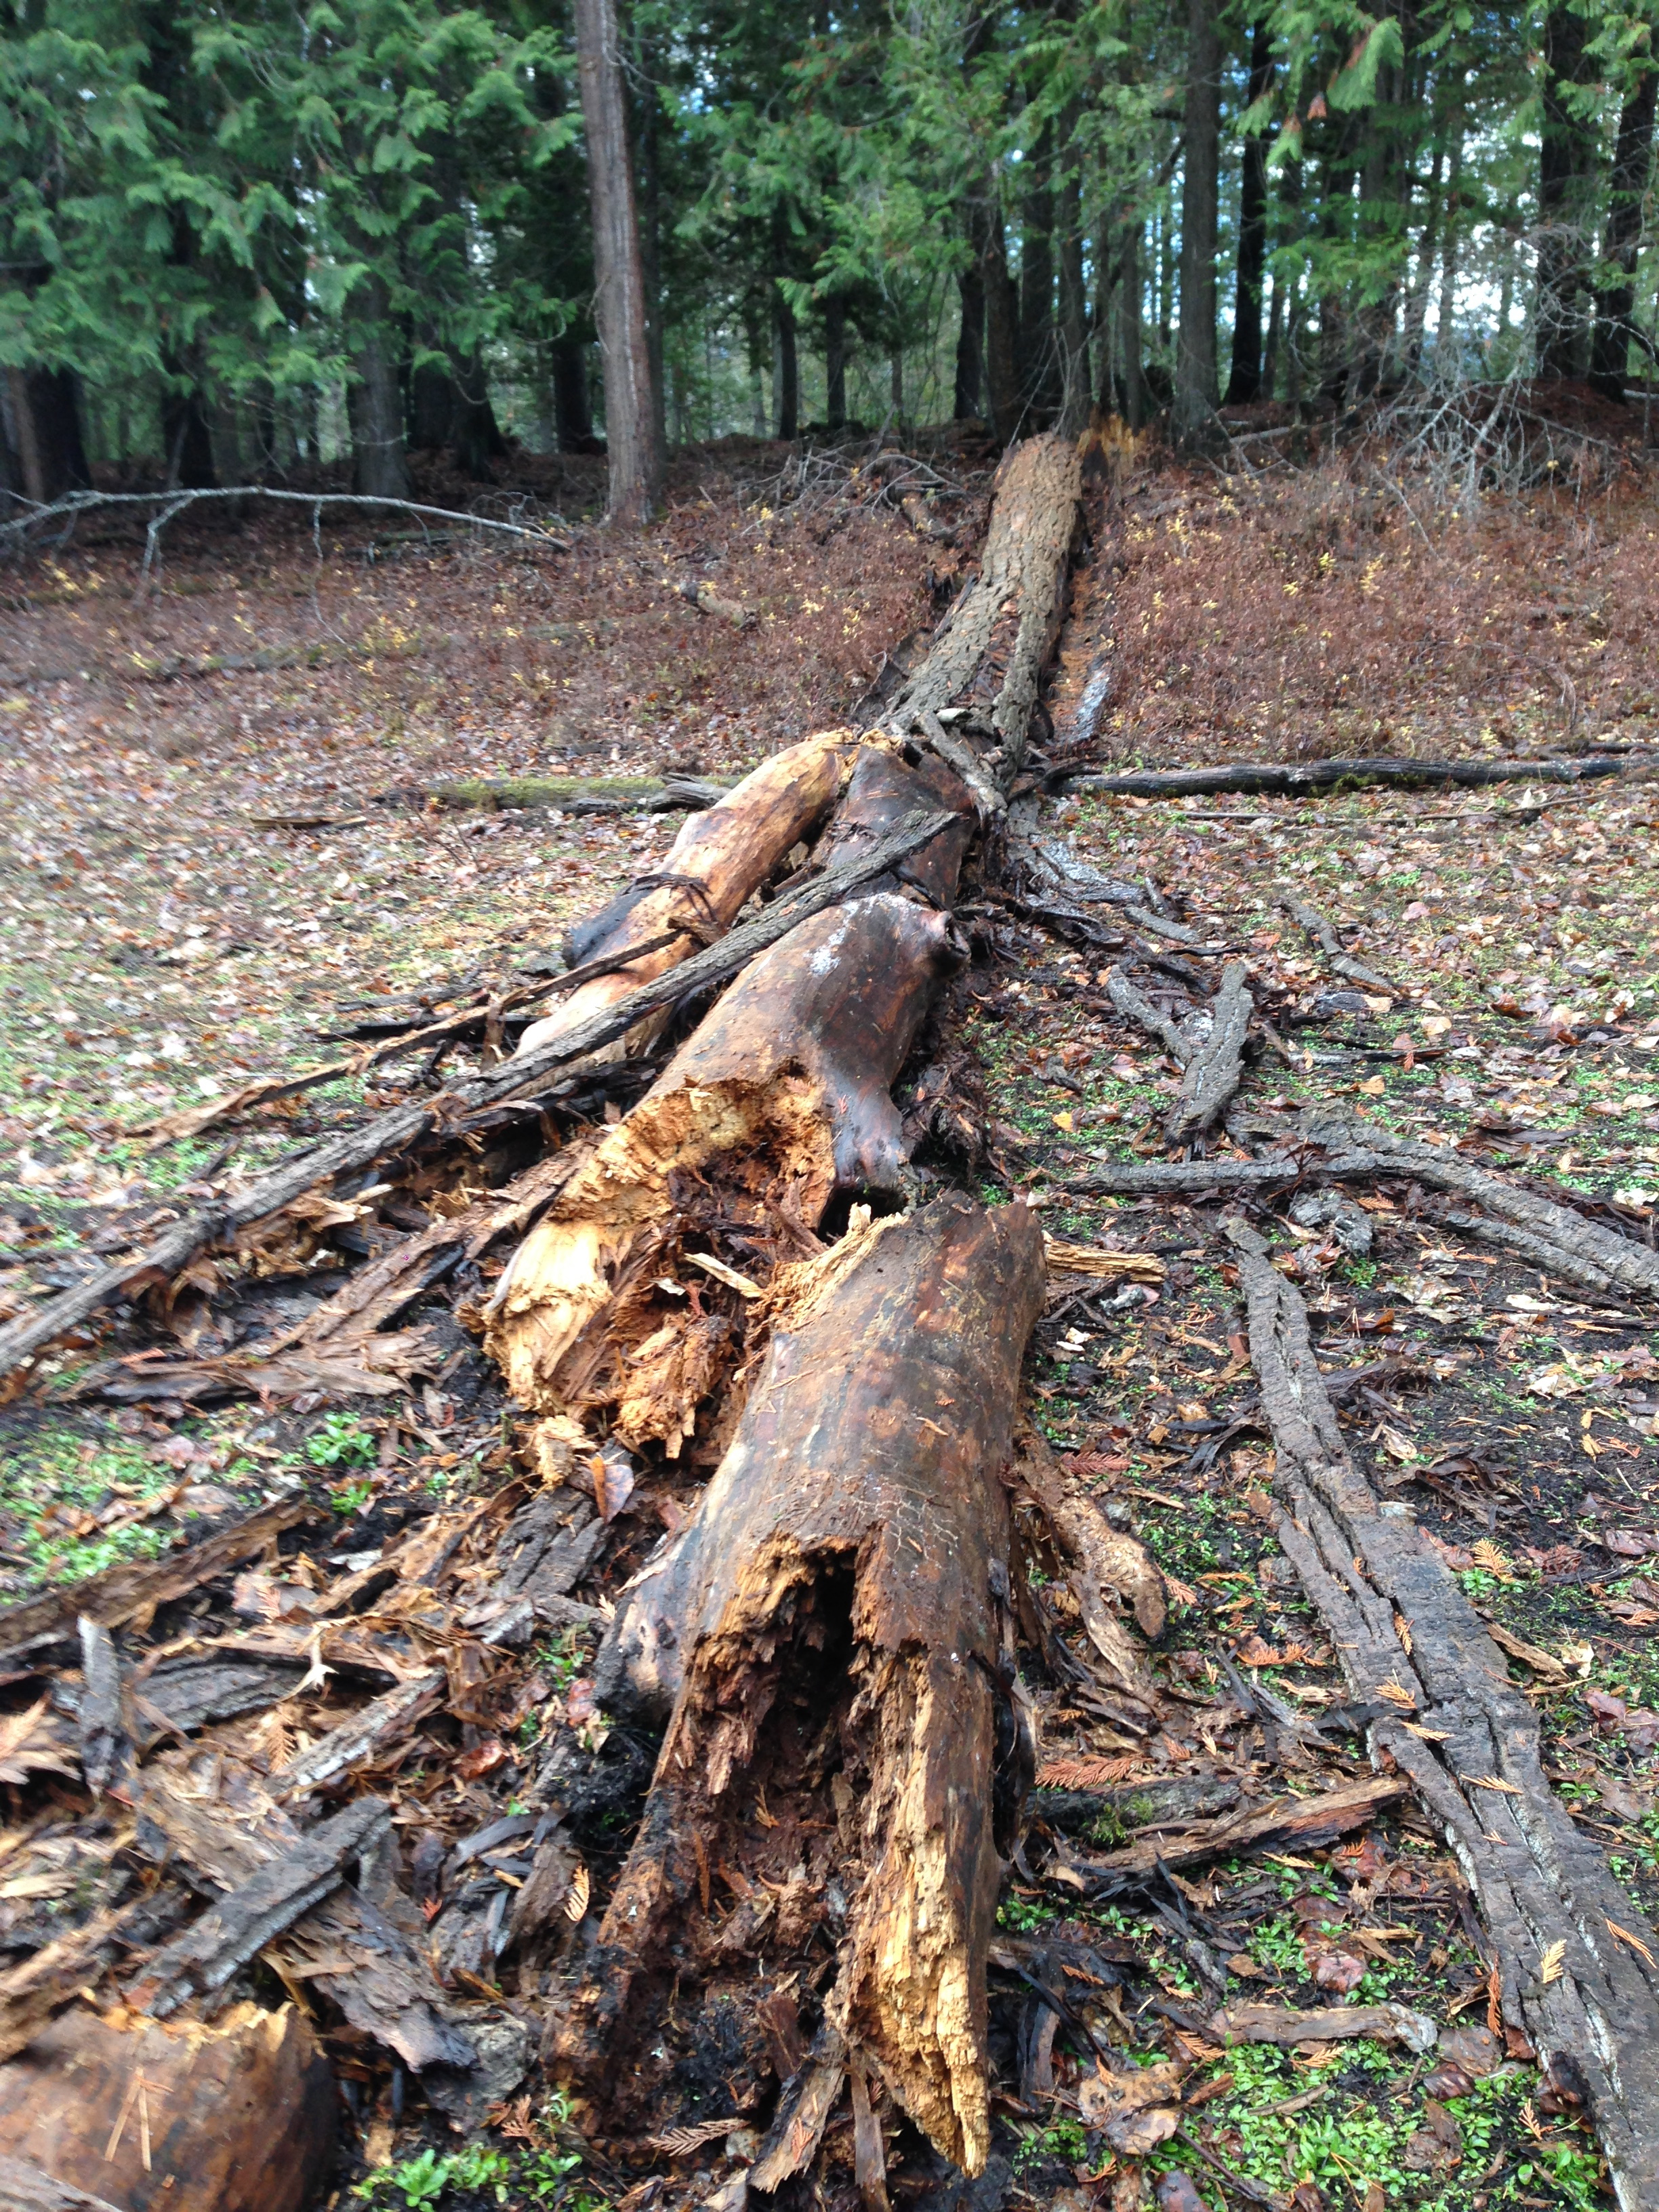 On a really windy day we heard and felt a big boom. This standing dead tree fell into the dry pond.